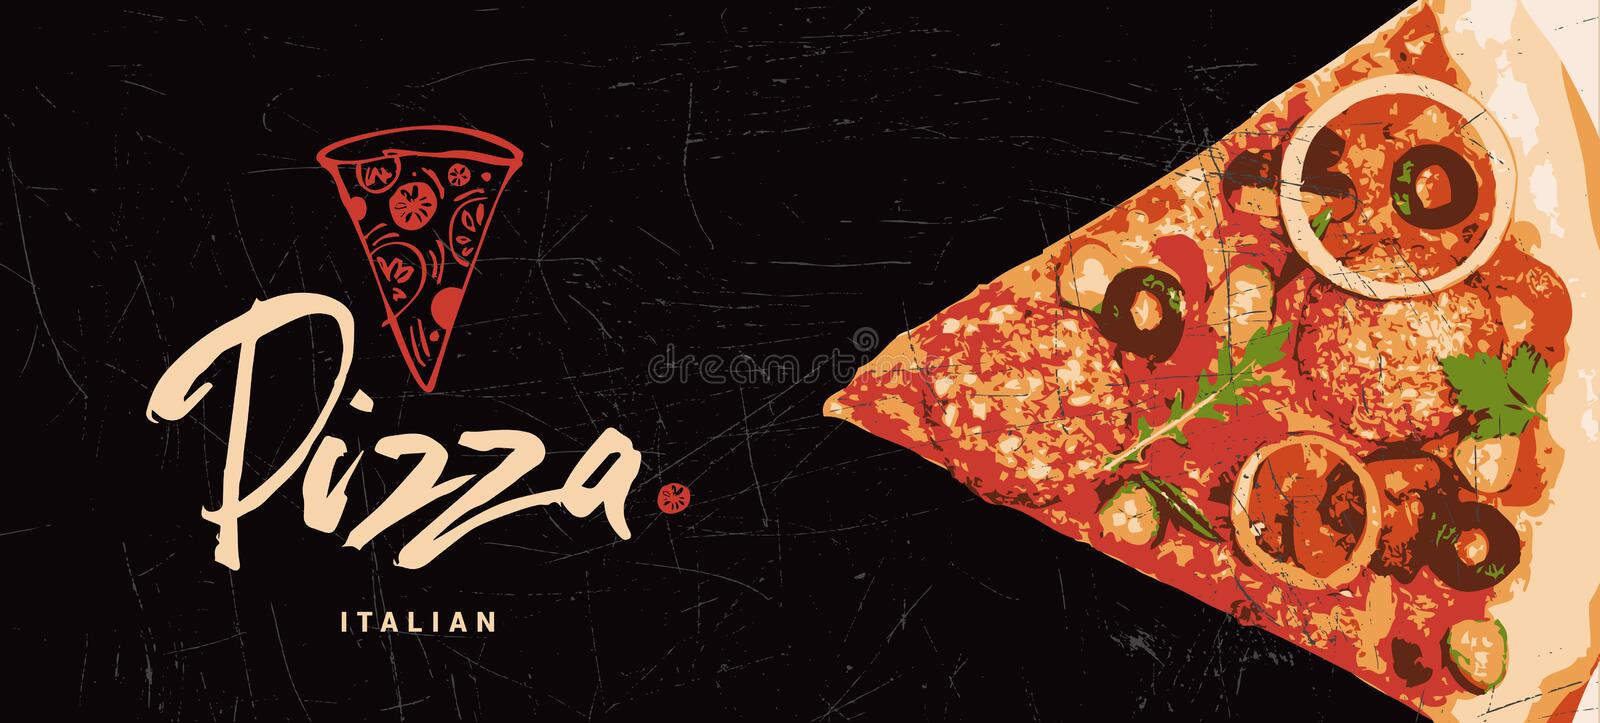 Hand drawn logotype of pizza. Italian pizza made with passion, love. Cooking   template. Cover, label, background, l royalty free illustration